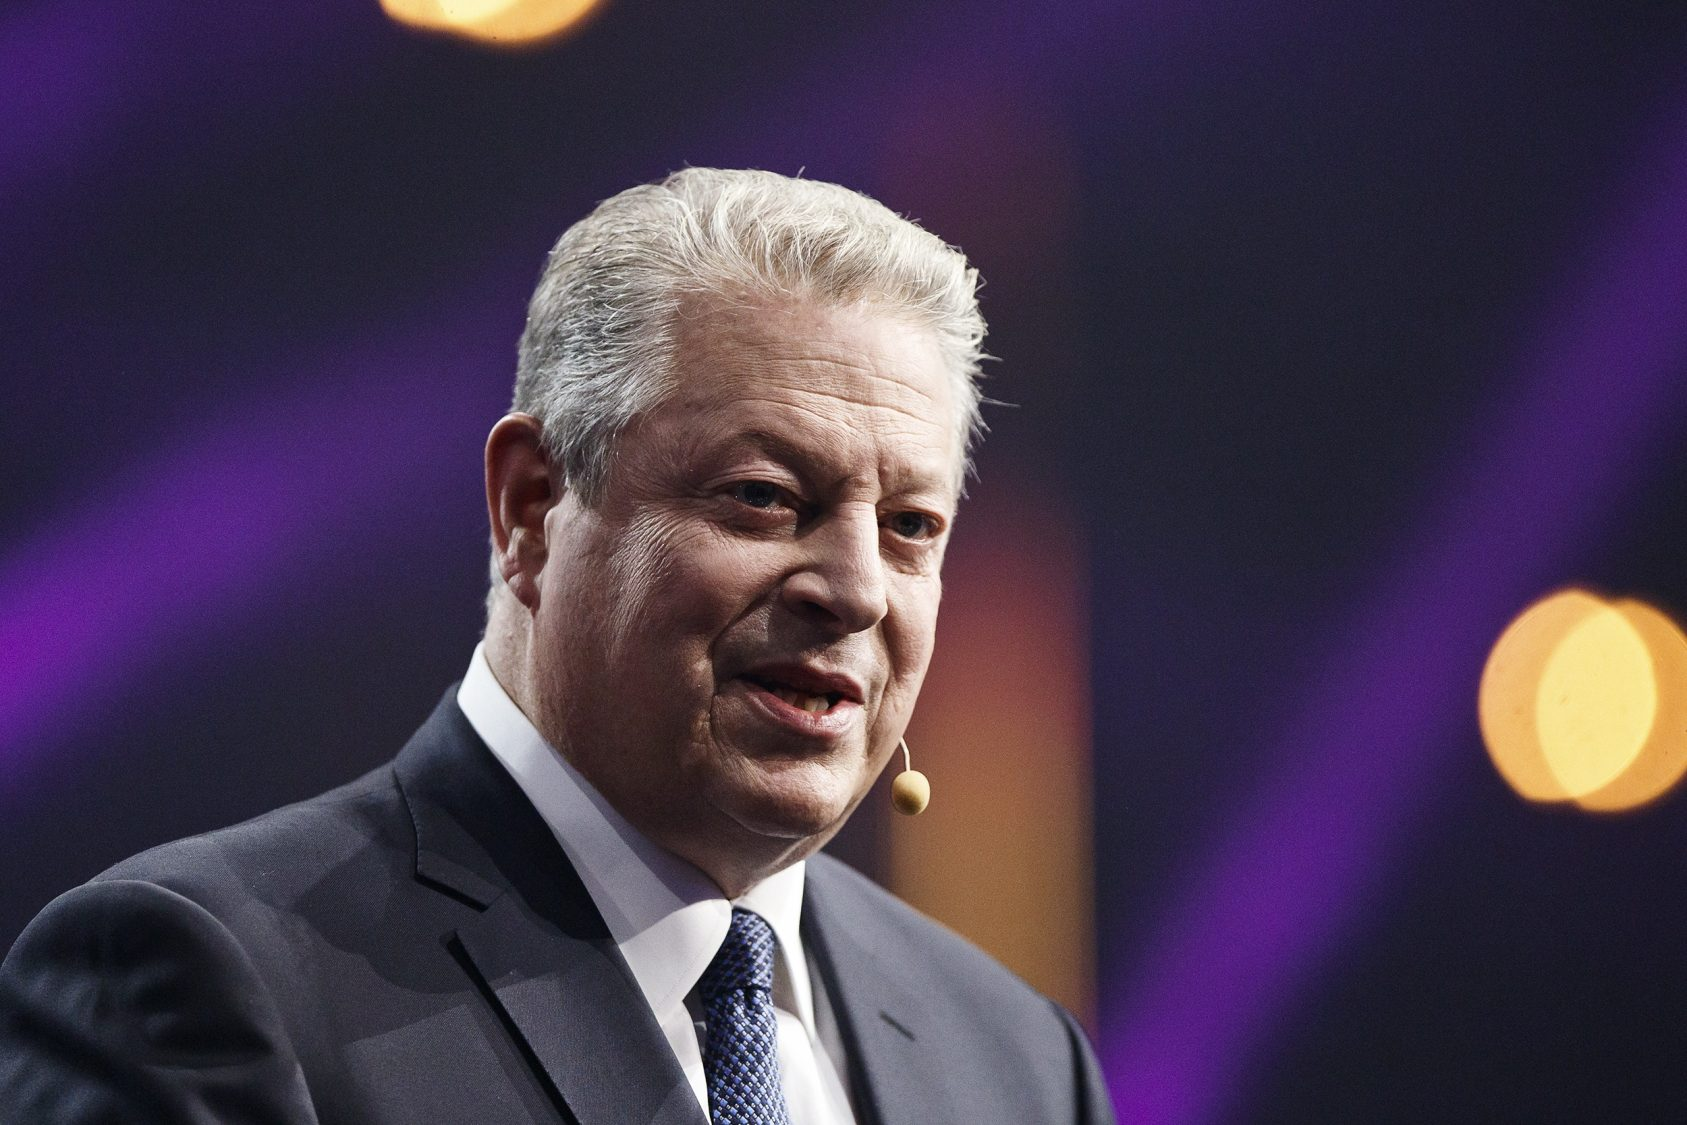 """The conference kicked off with former US president Al Gore addressing the audience – which was abundant. """"My purpose is to recruit you to be part of the solution to the climate crisis,"""" he said. No doubt most of Slush was already on board."""